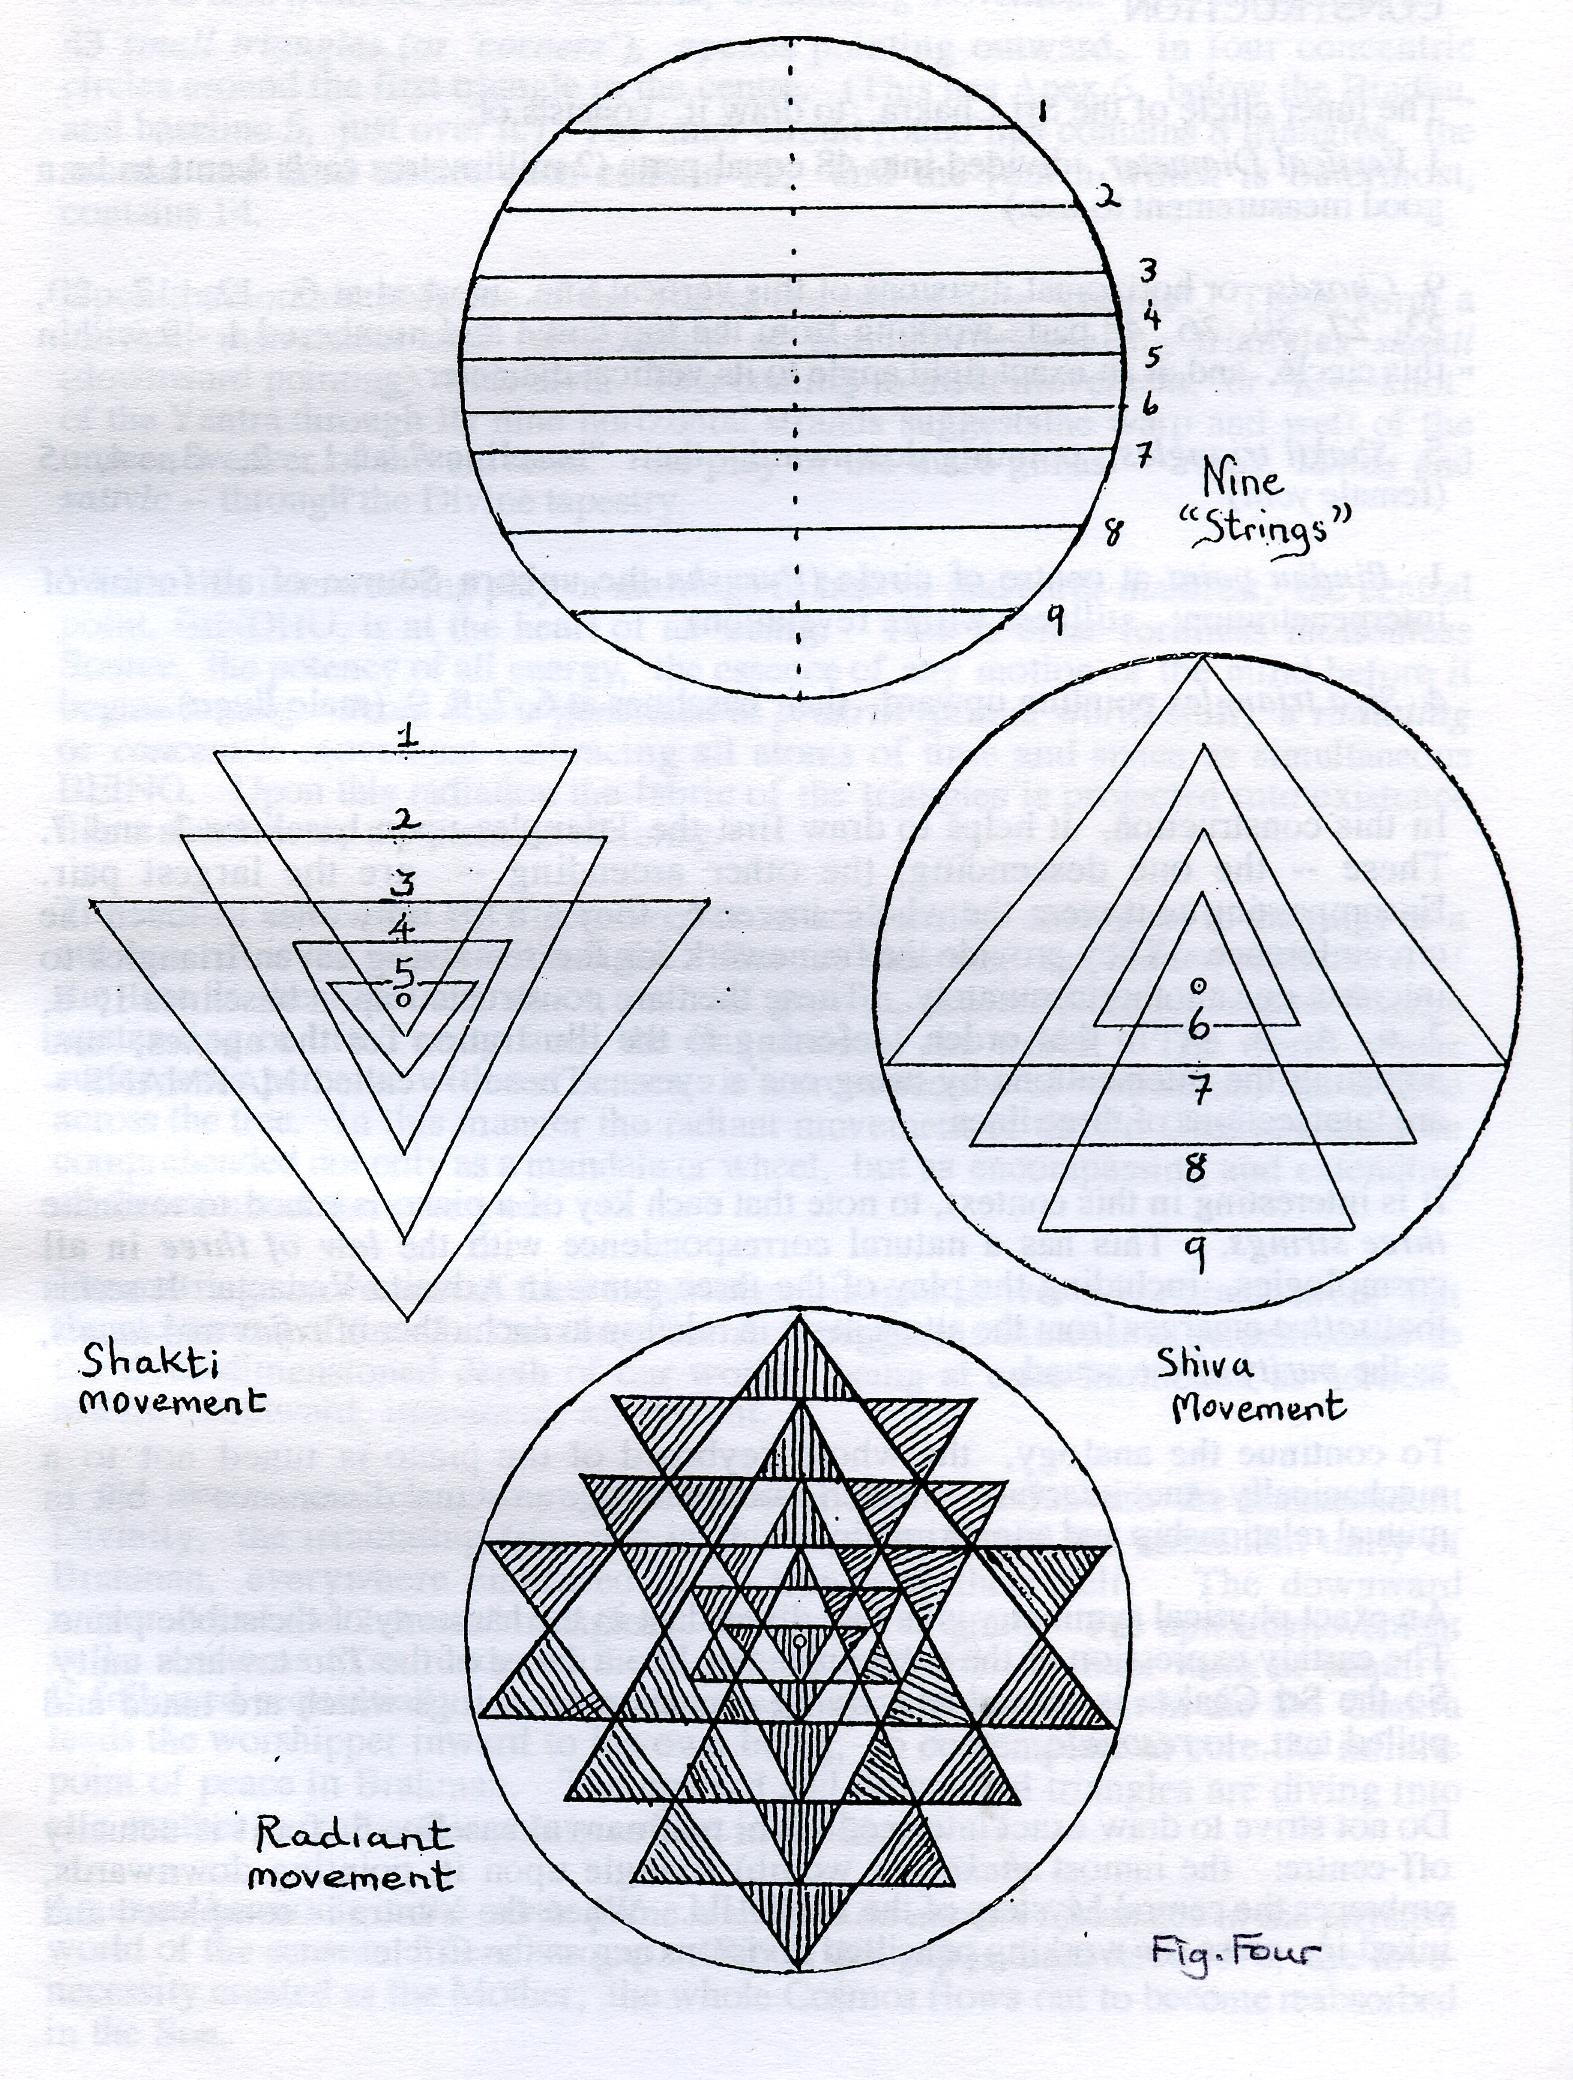 How to draw the sri chakra yantra janeadamsart do not strive to draw exact intersections or marmans at baseline 5 for it is actually off centre the inmost shakti or womb triangle on it biocorpaavc Choice Image